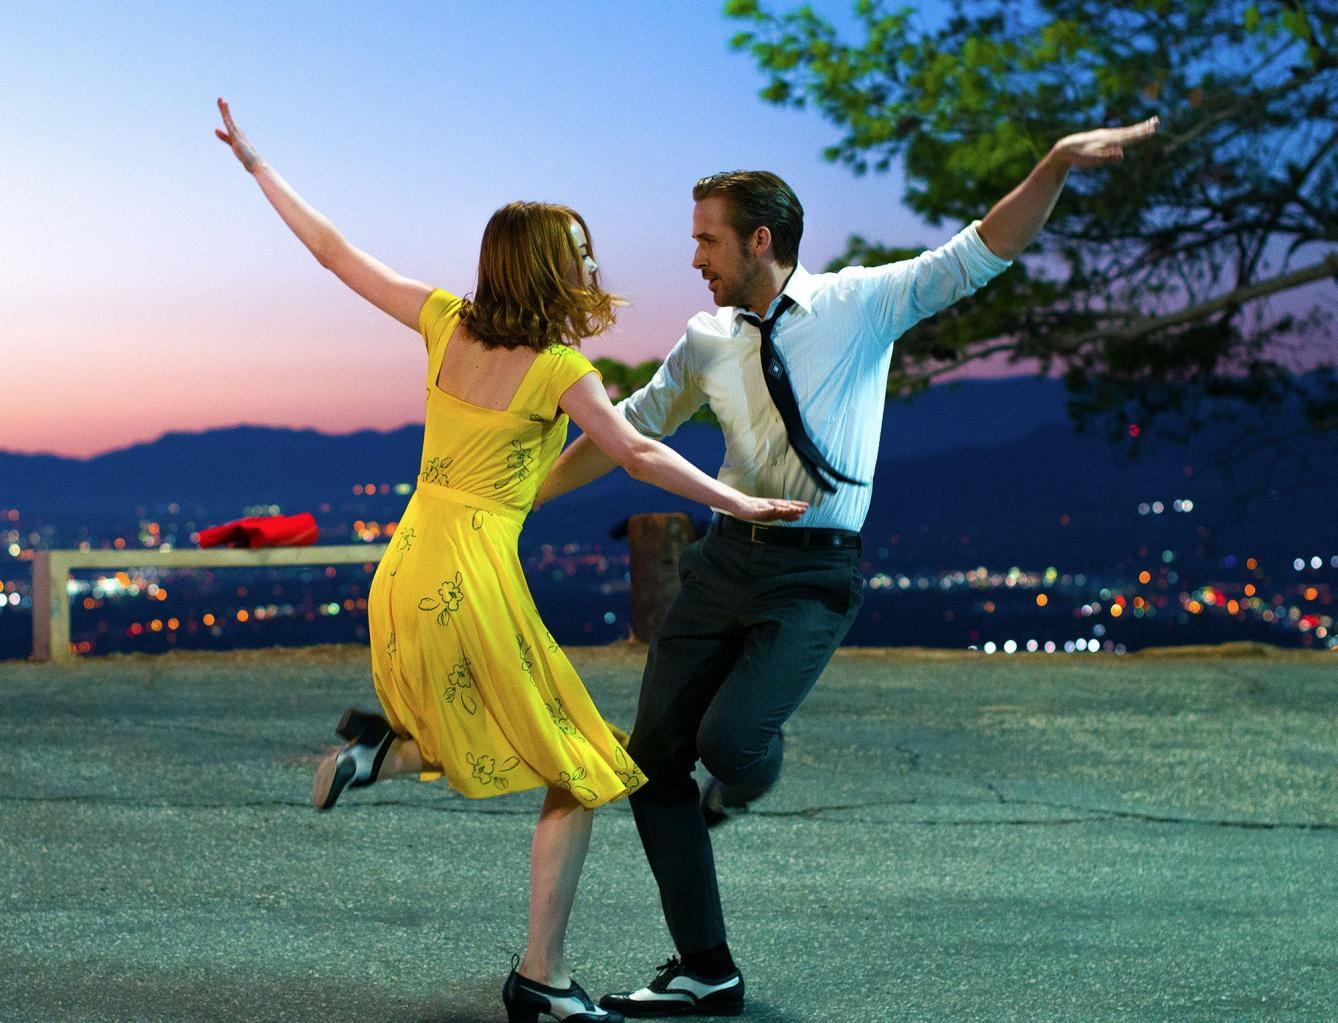 La La Land Director Dishes on Emma Stone and Ryan Gosling's 'Organic' and 'Phenomenal' Onscreen Chemistry